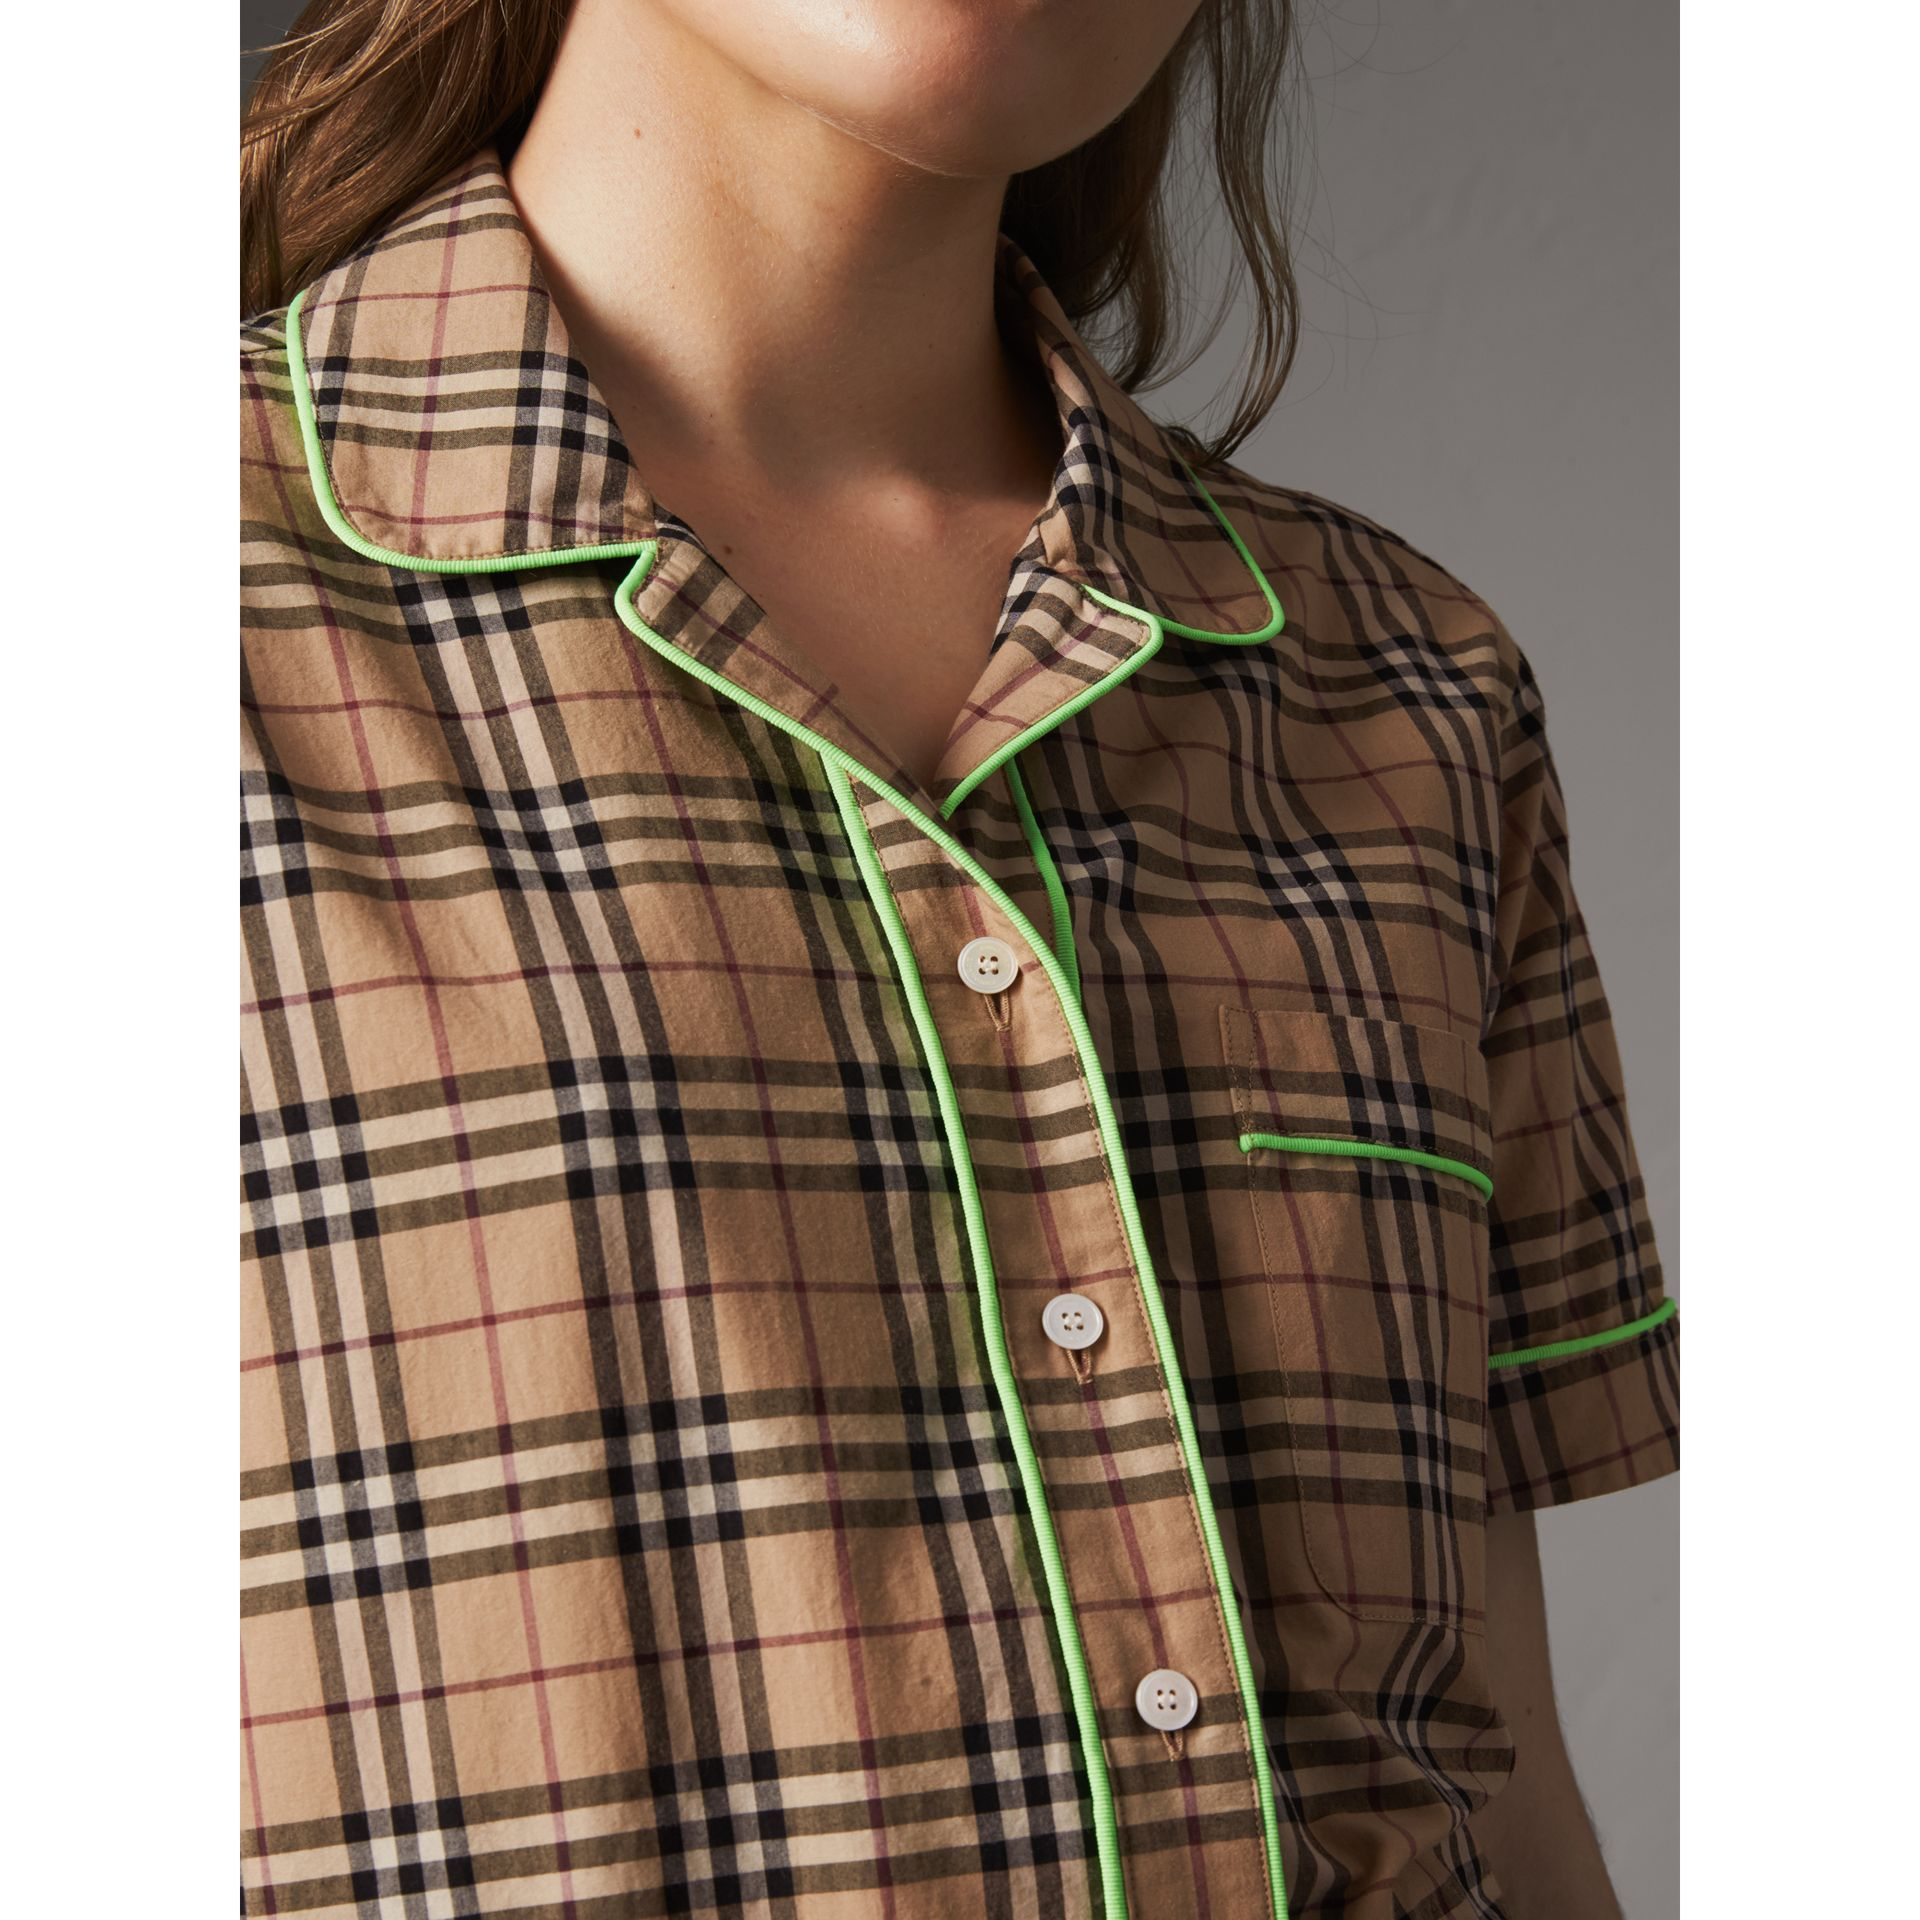 Contrast Piping Check Cotton Pyjama-style Shirt in Camel - Women | Burberry Singapore - gallery image 1